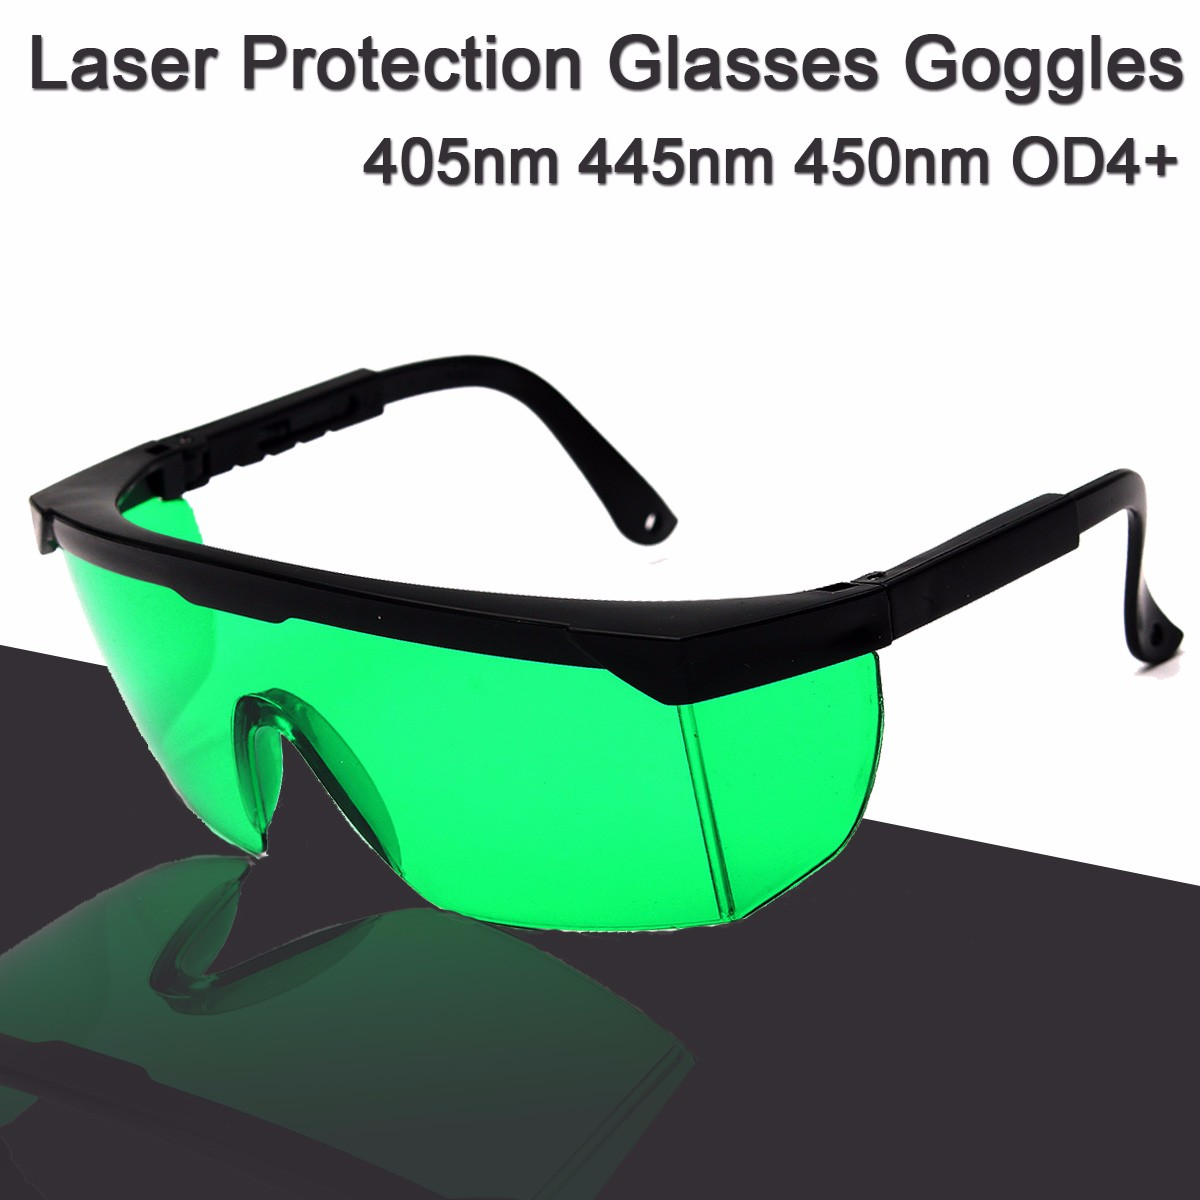 все цены на 405nm 445nm 450nm Blue 808NM 980NM IR Laser Protection Glasses Goggles OD4+ онлайн